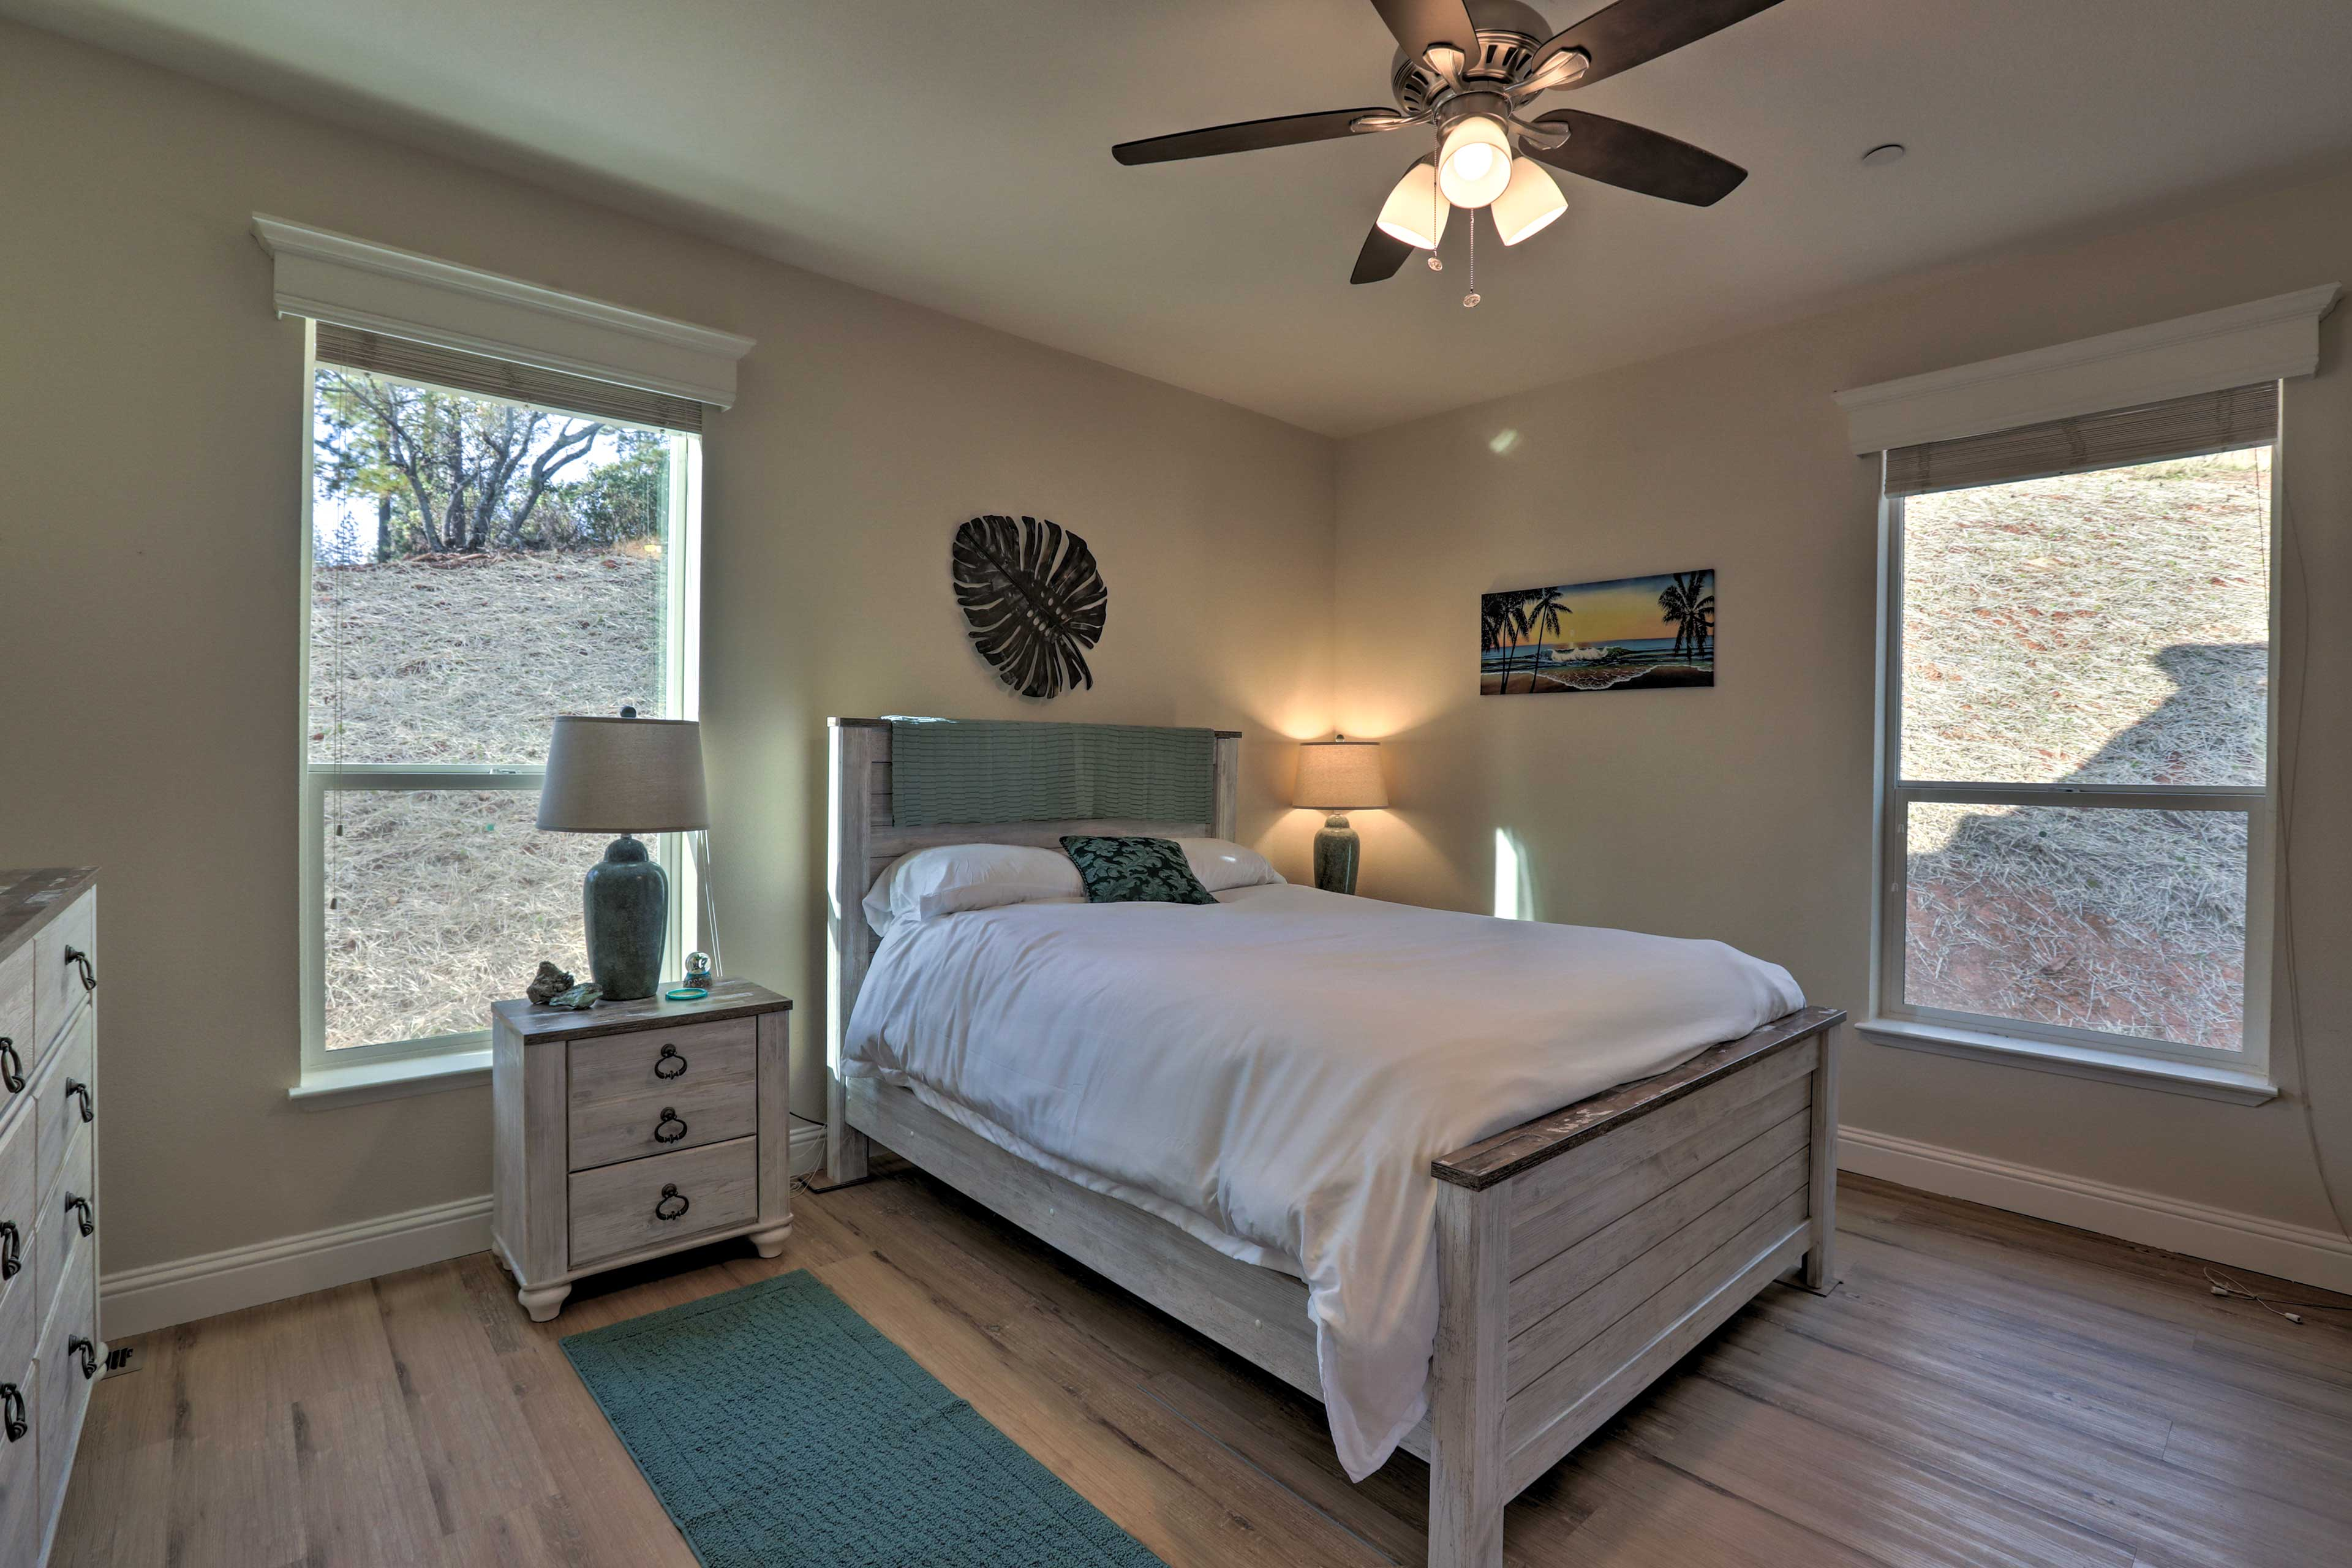 The home features 4 bedrooms, with additional sleeping using air mattresses.